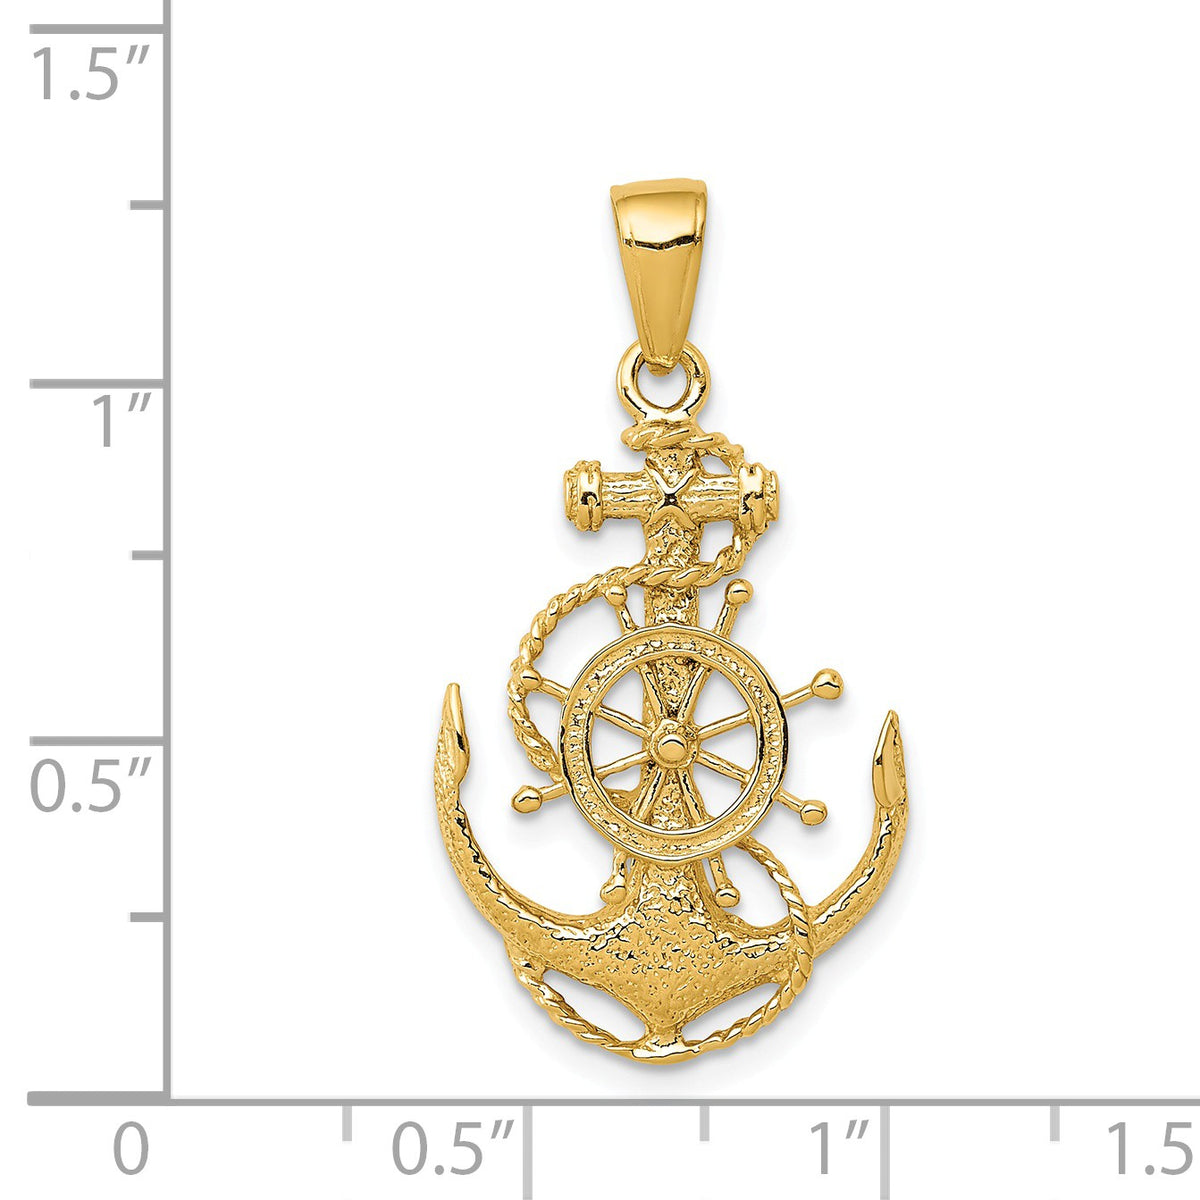 Alternate view of the 14k Yellow Gold Medium Anchor, Ship's Wheel and Rope Pendant by The Black Bow Jewelry Co.